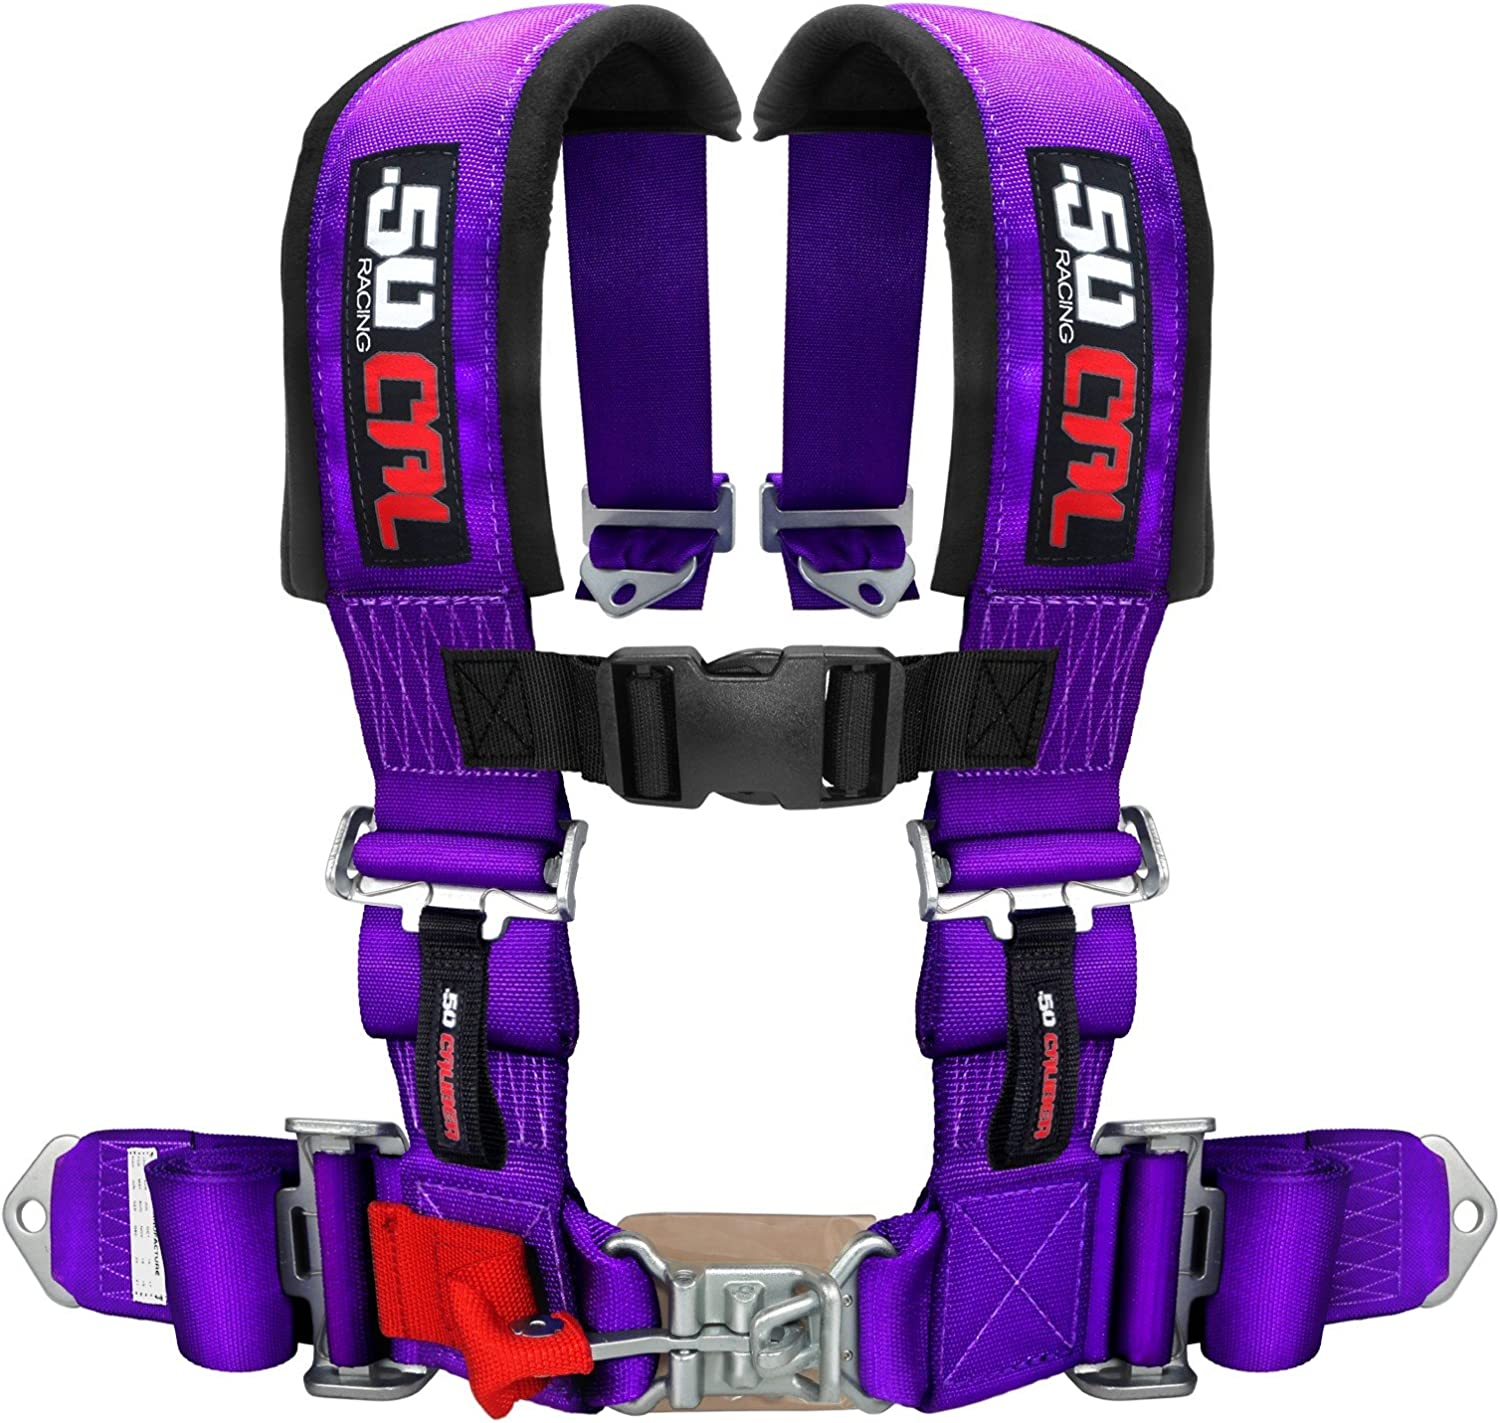 Mounting Hardware Included Fits Polaris RZR Models 5048A5 CB 6008P1 Bump Seat with 2 Purple 4 Point Safety Harness